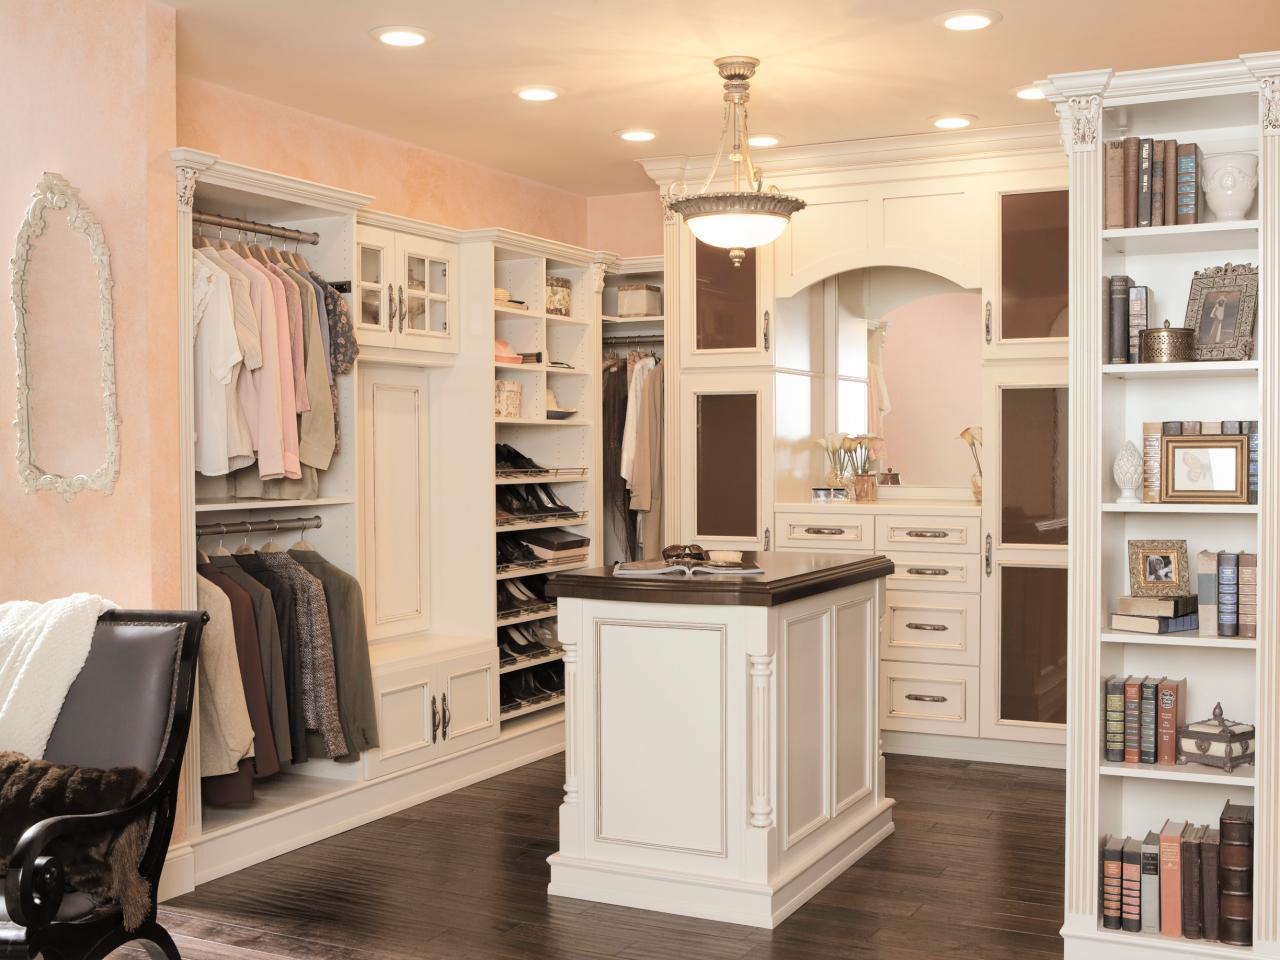 Master Closet Design Ideas style board series master closet Handsome Design